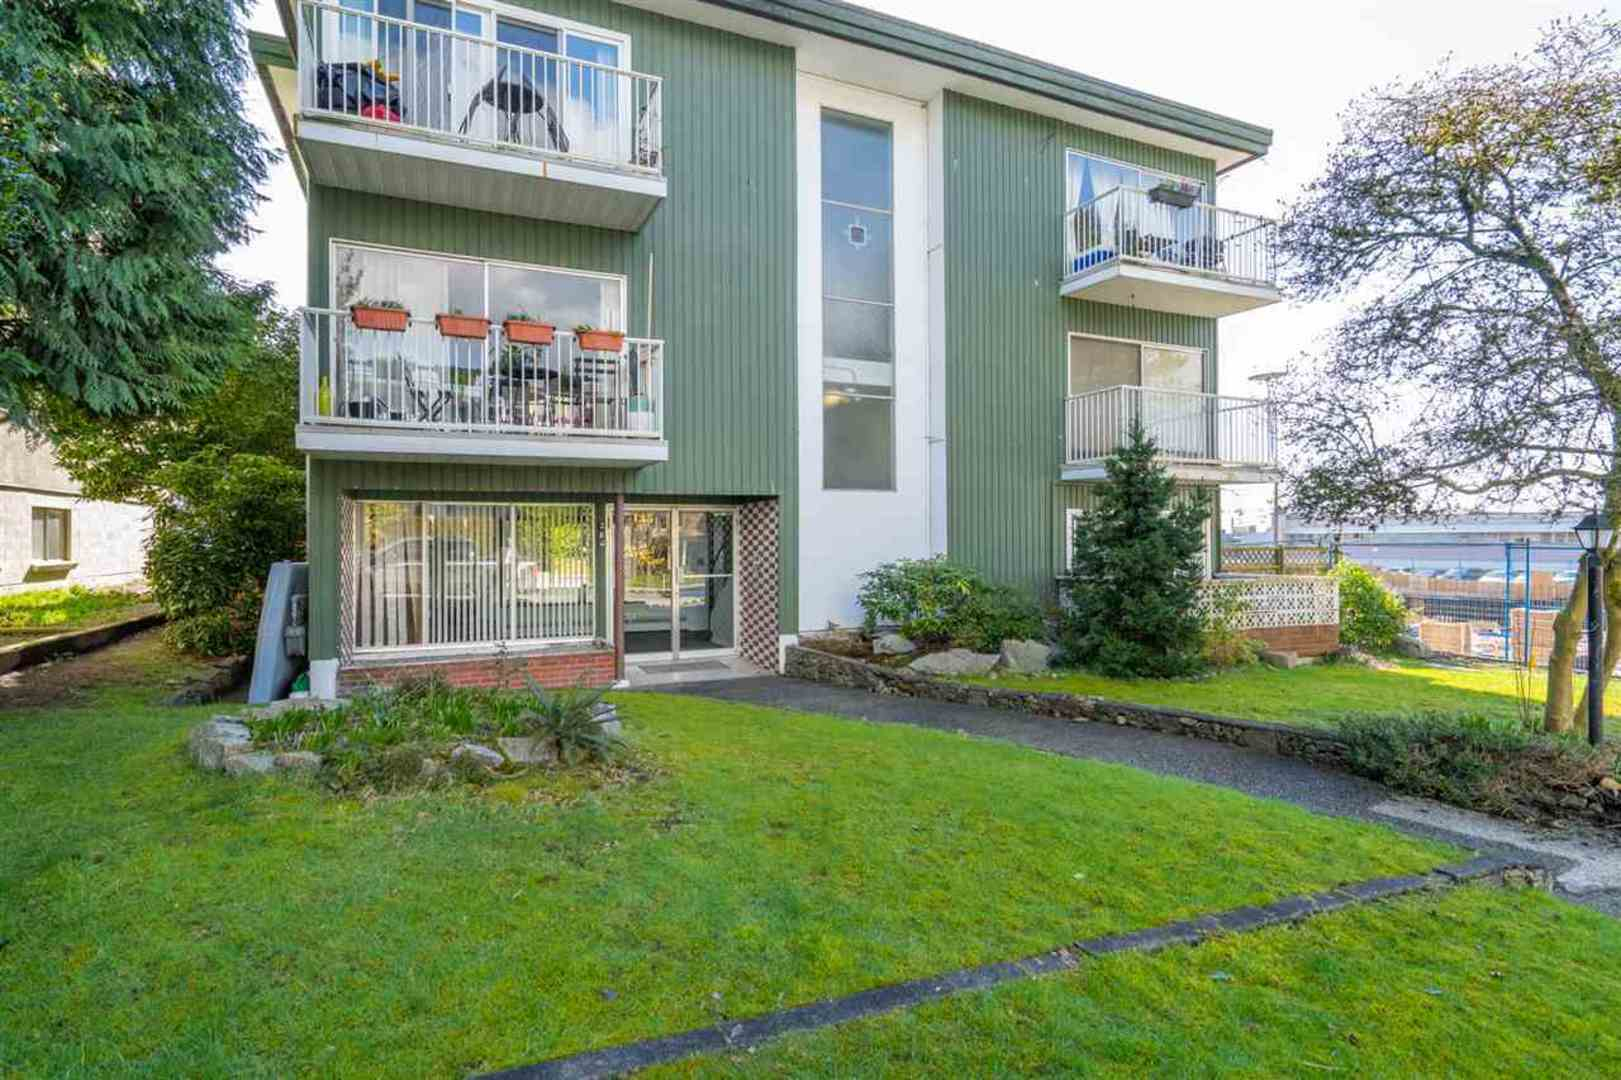 135-e-20th-street-central-lonsdale-north-vancouver-06 at 101 - 135 E 20th Street, Central Lonsdale, North Vancouver